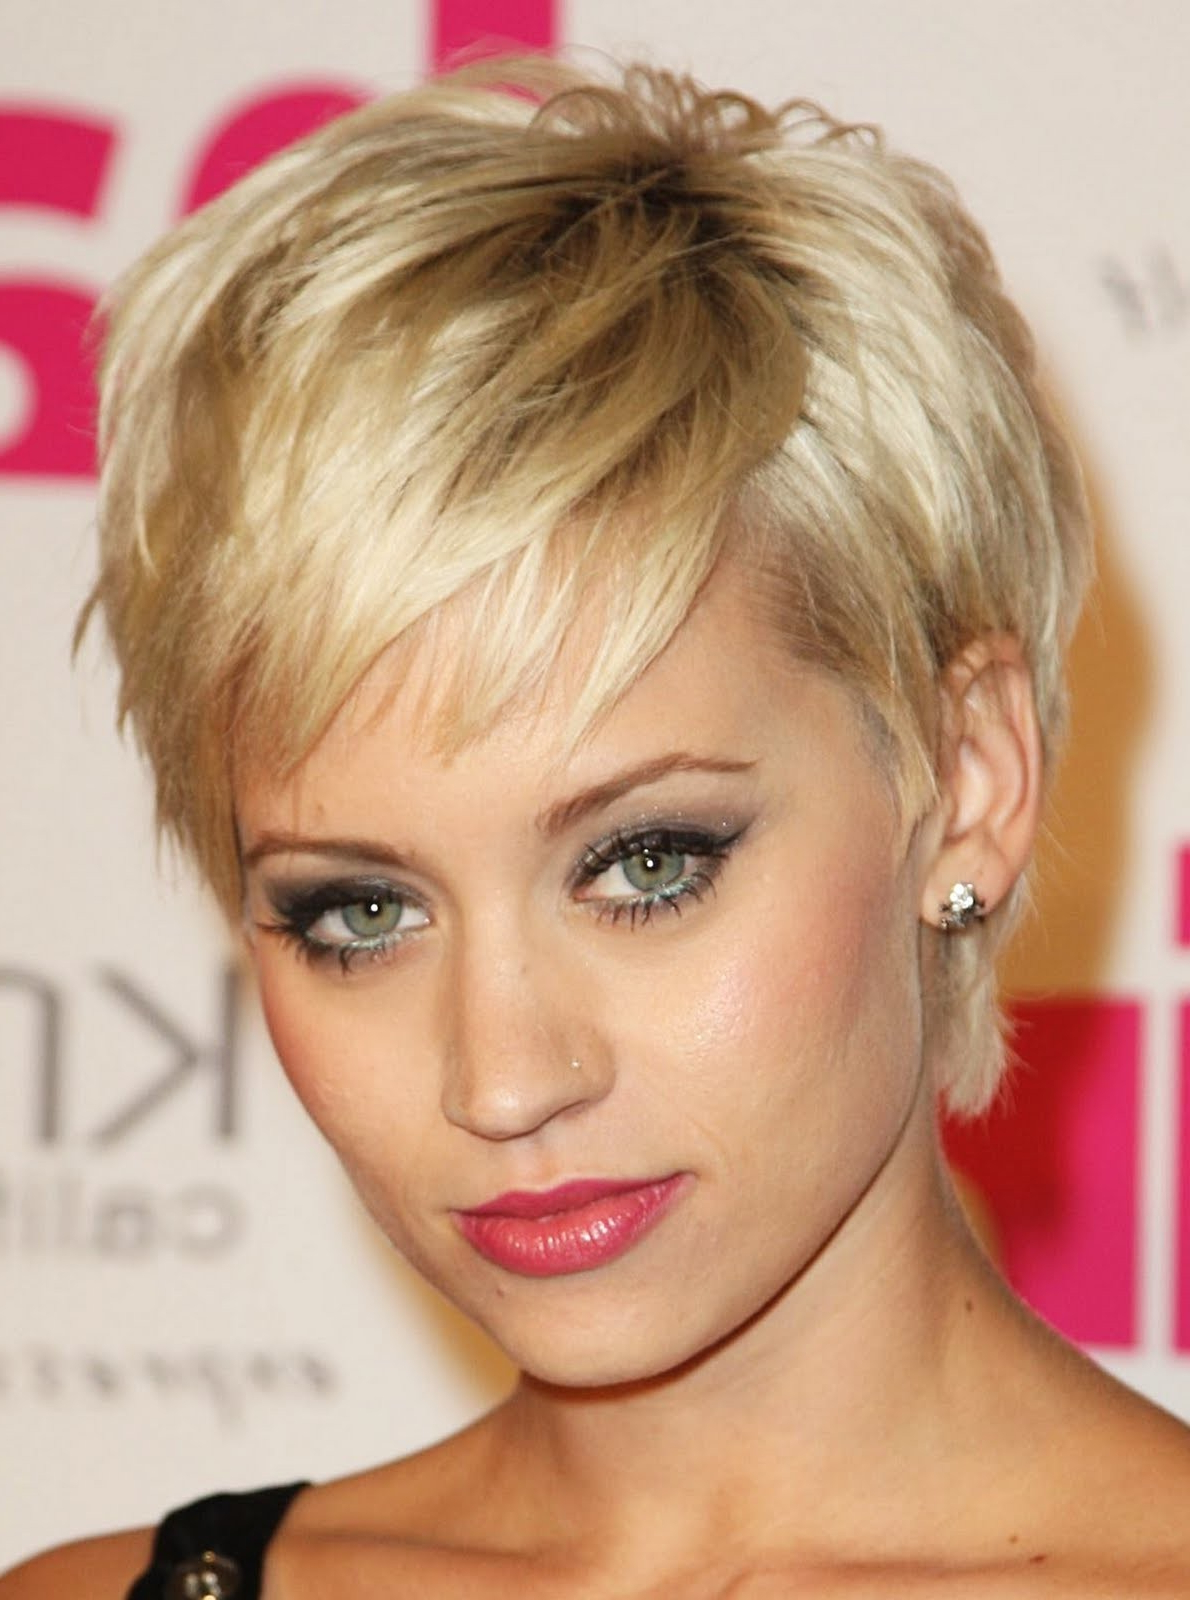 Beautiful Short Haircuts For Women With Long Face – Razanflight Pertaining To Short Haircuts For Long Faces (View 9 of 25)